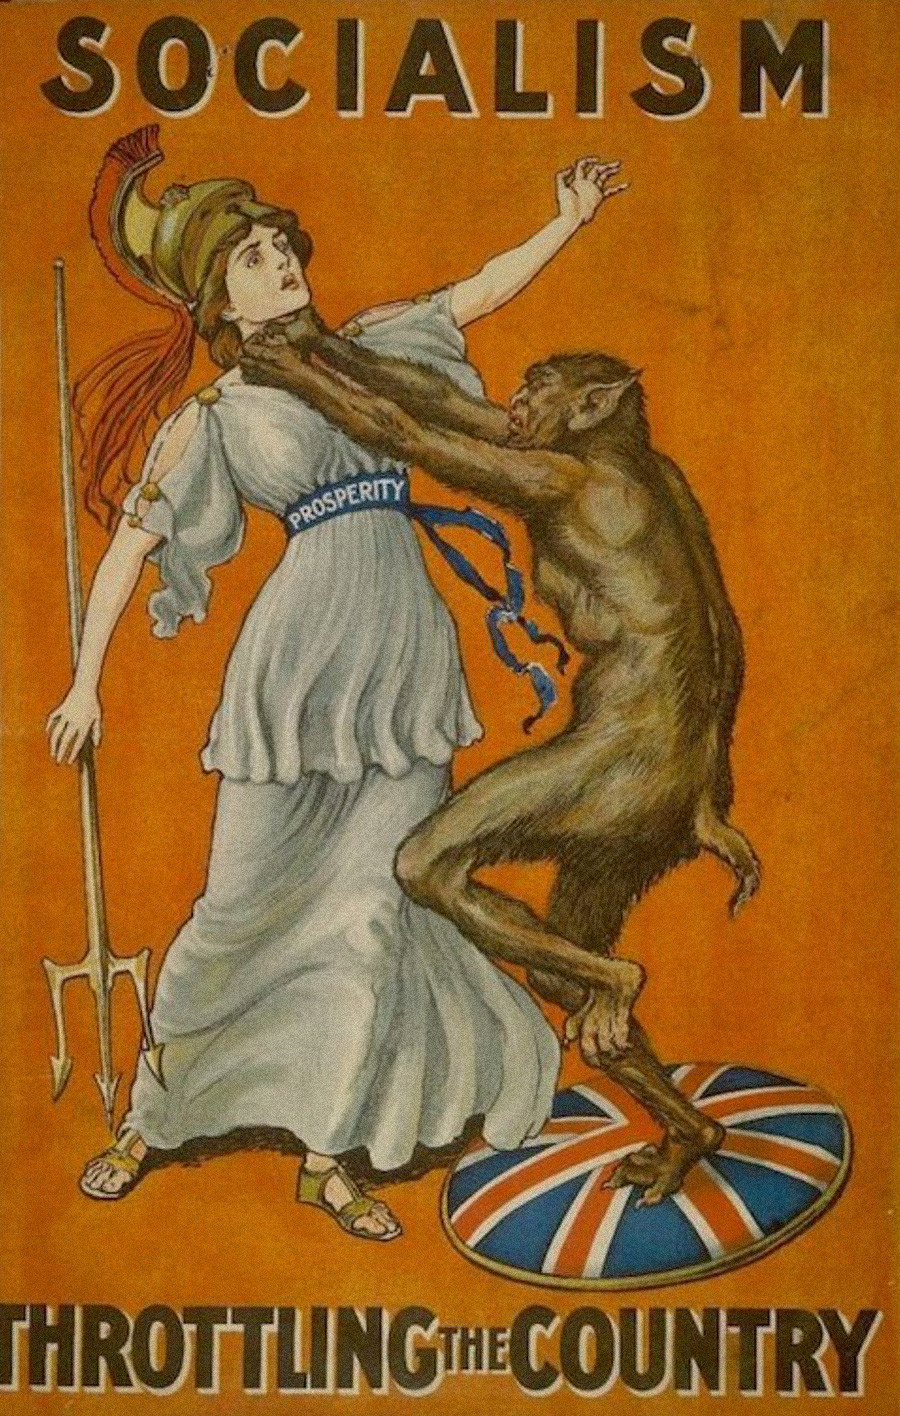 This poster was commissioned by the Conservative Party in Britain in 1909.